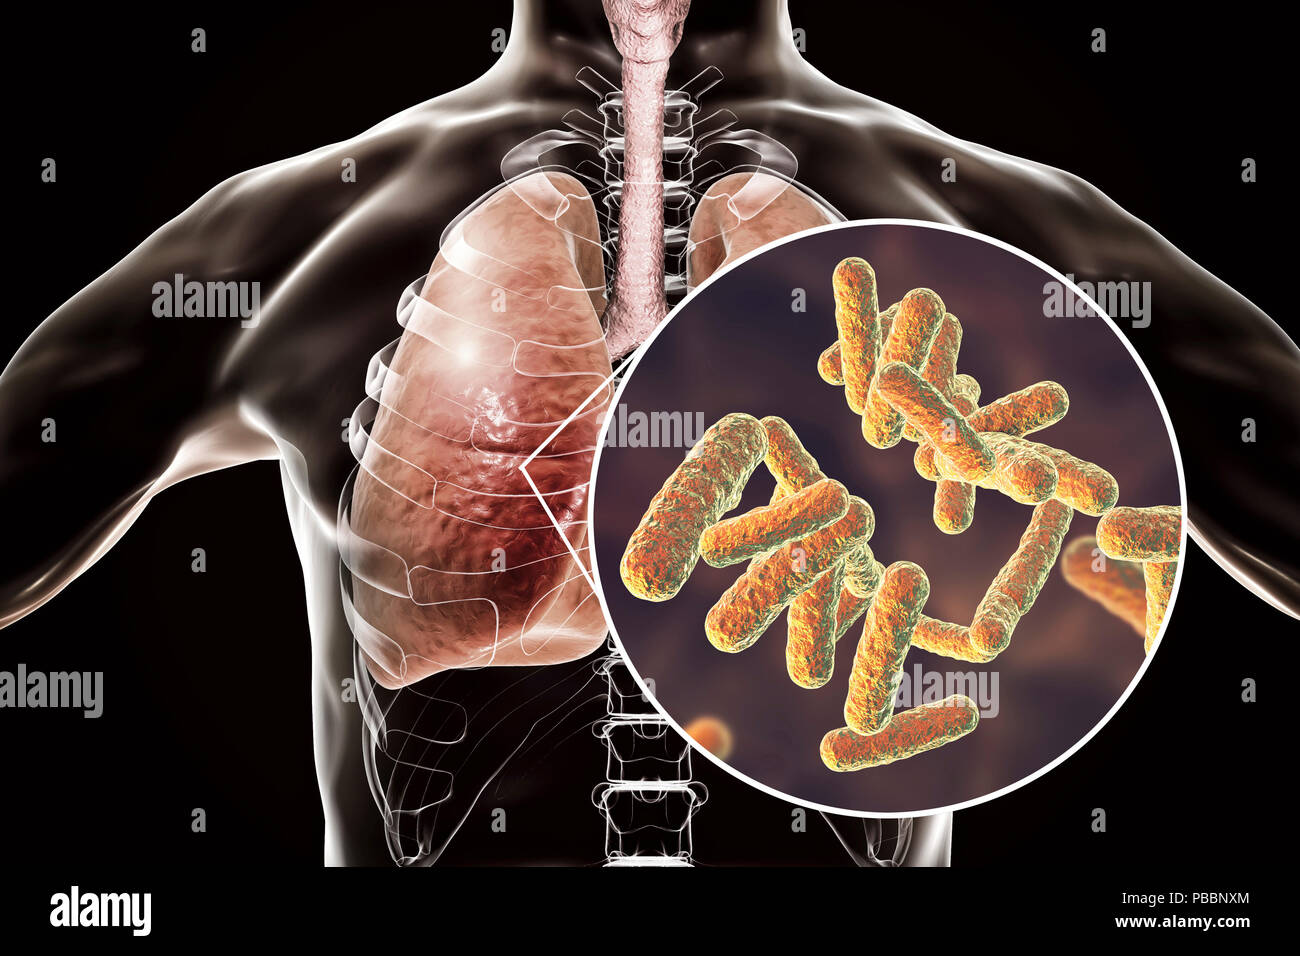 Bacterial pneumonia, conceptual illustration. Human lungs and close-up view of bacteria, one of the causative agents of pneumonia. - Stock Image